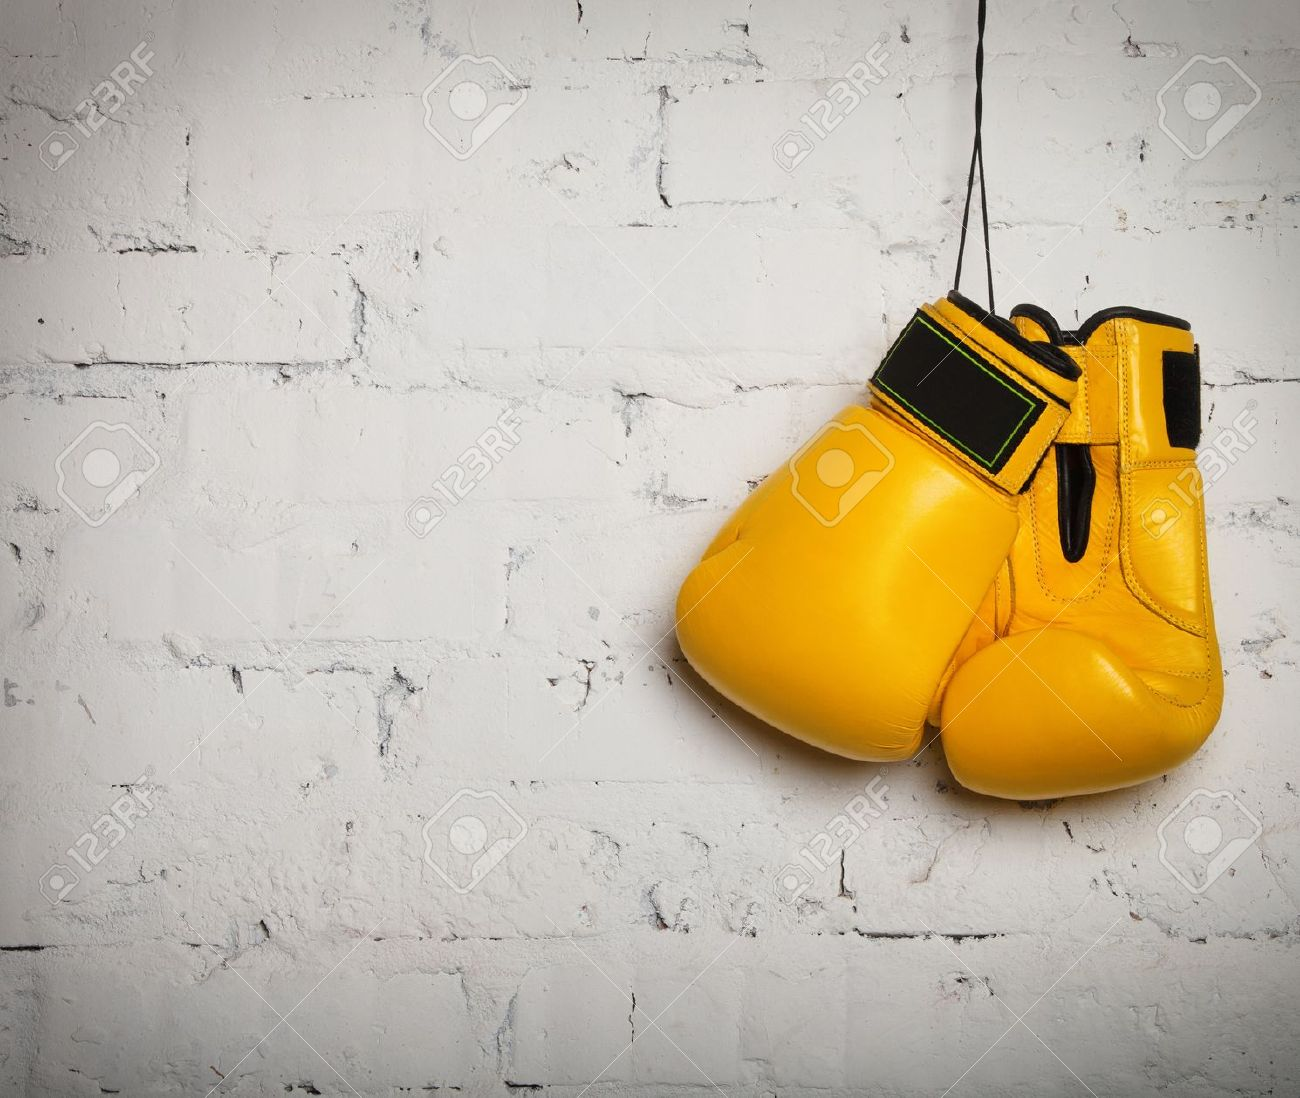 Pair of yellow boxing gloves hanging on a brick wall Stock Photo - 18941955